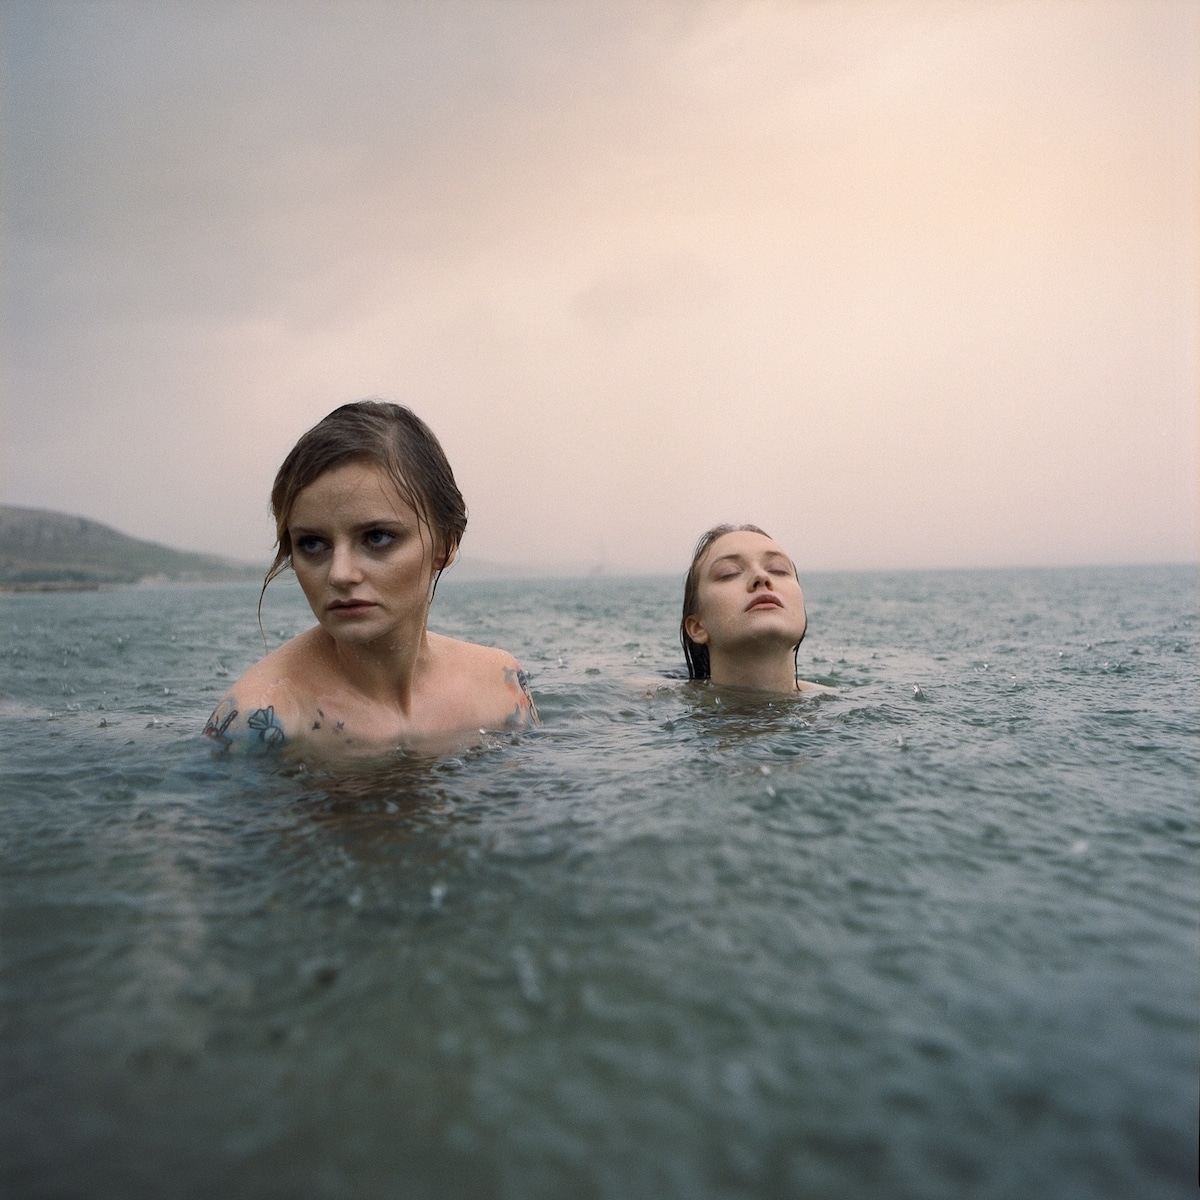 Two Women Emerging from Water